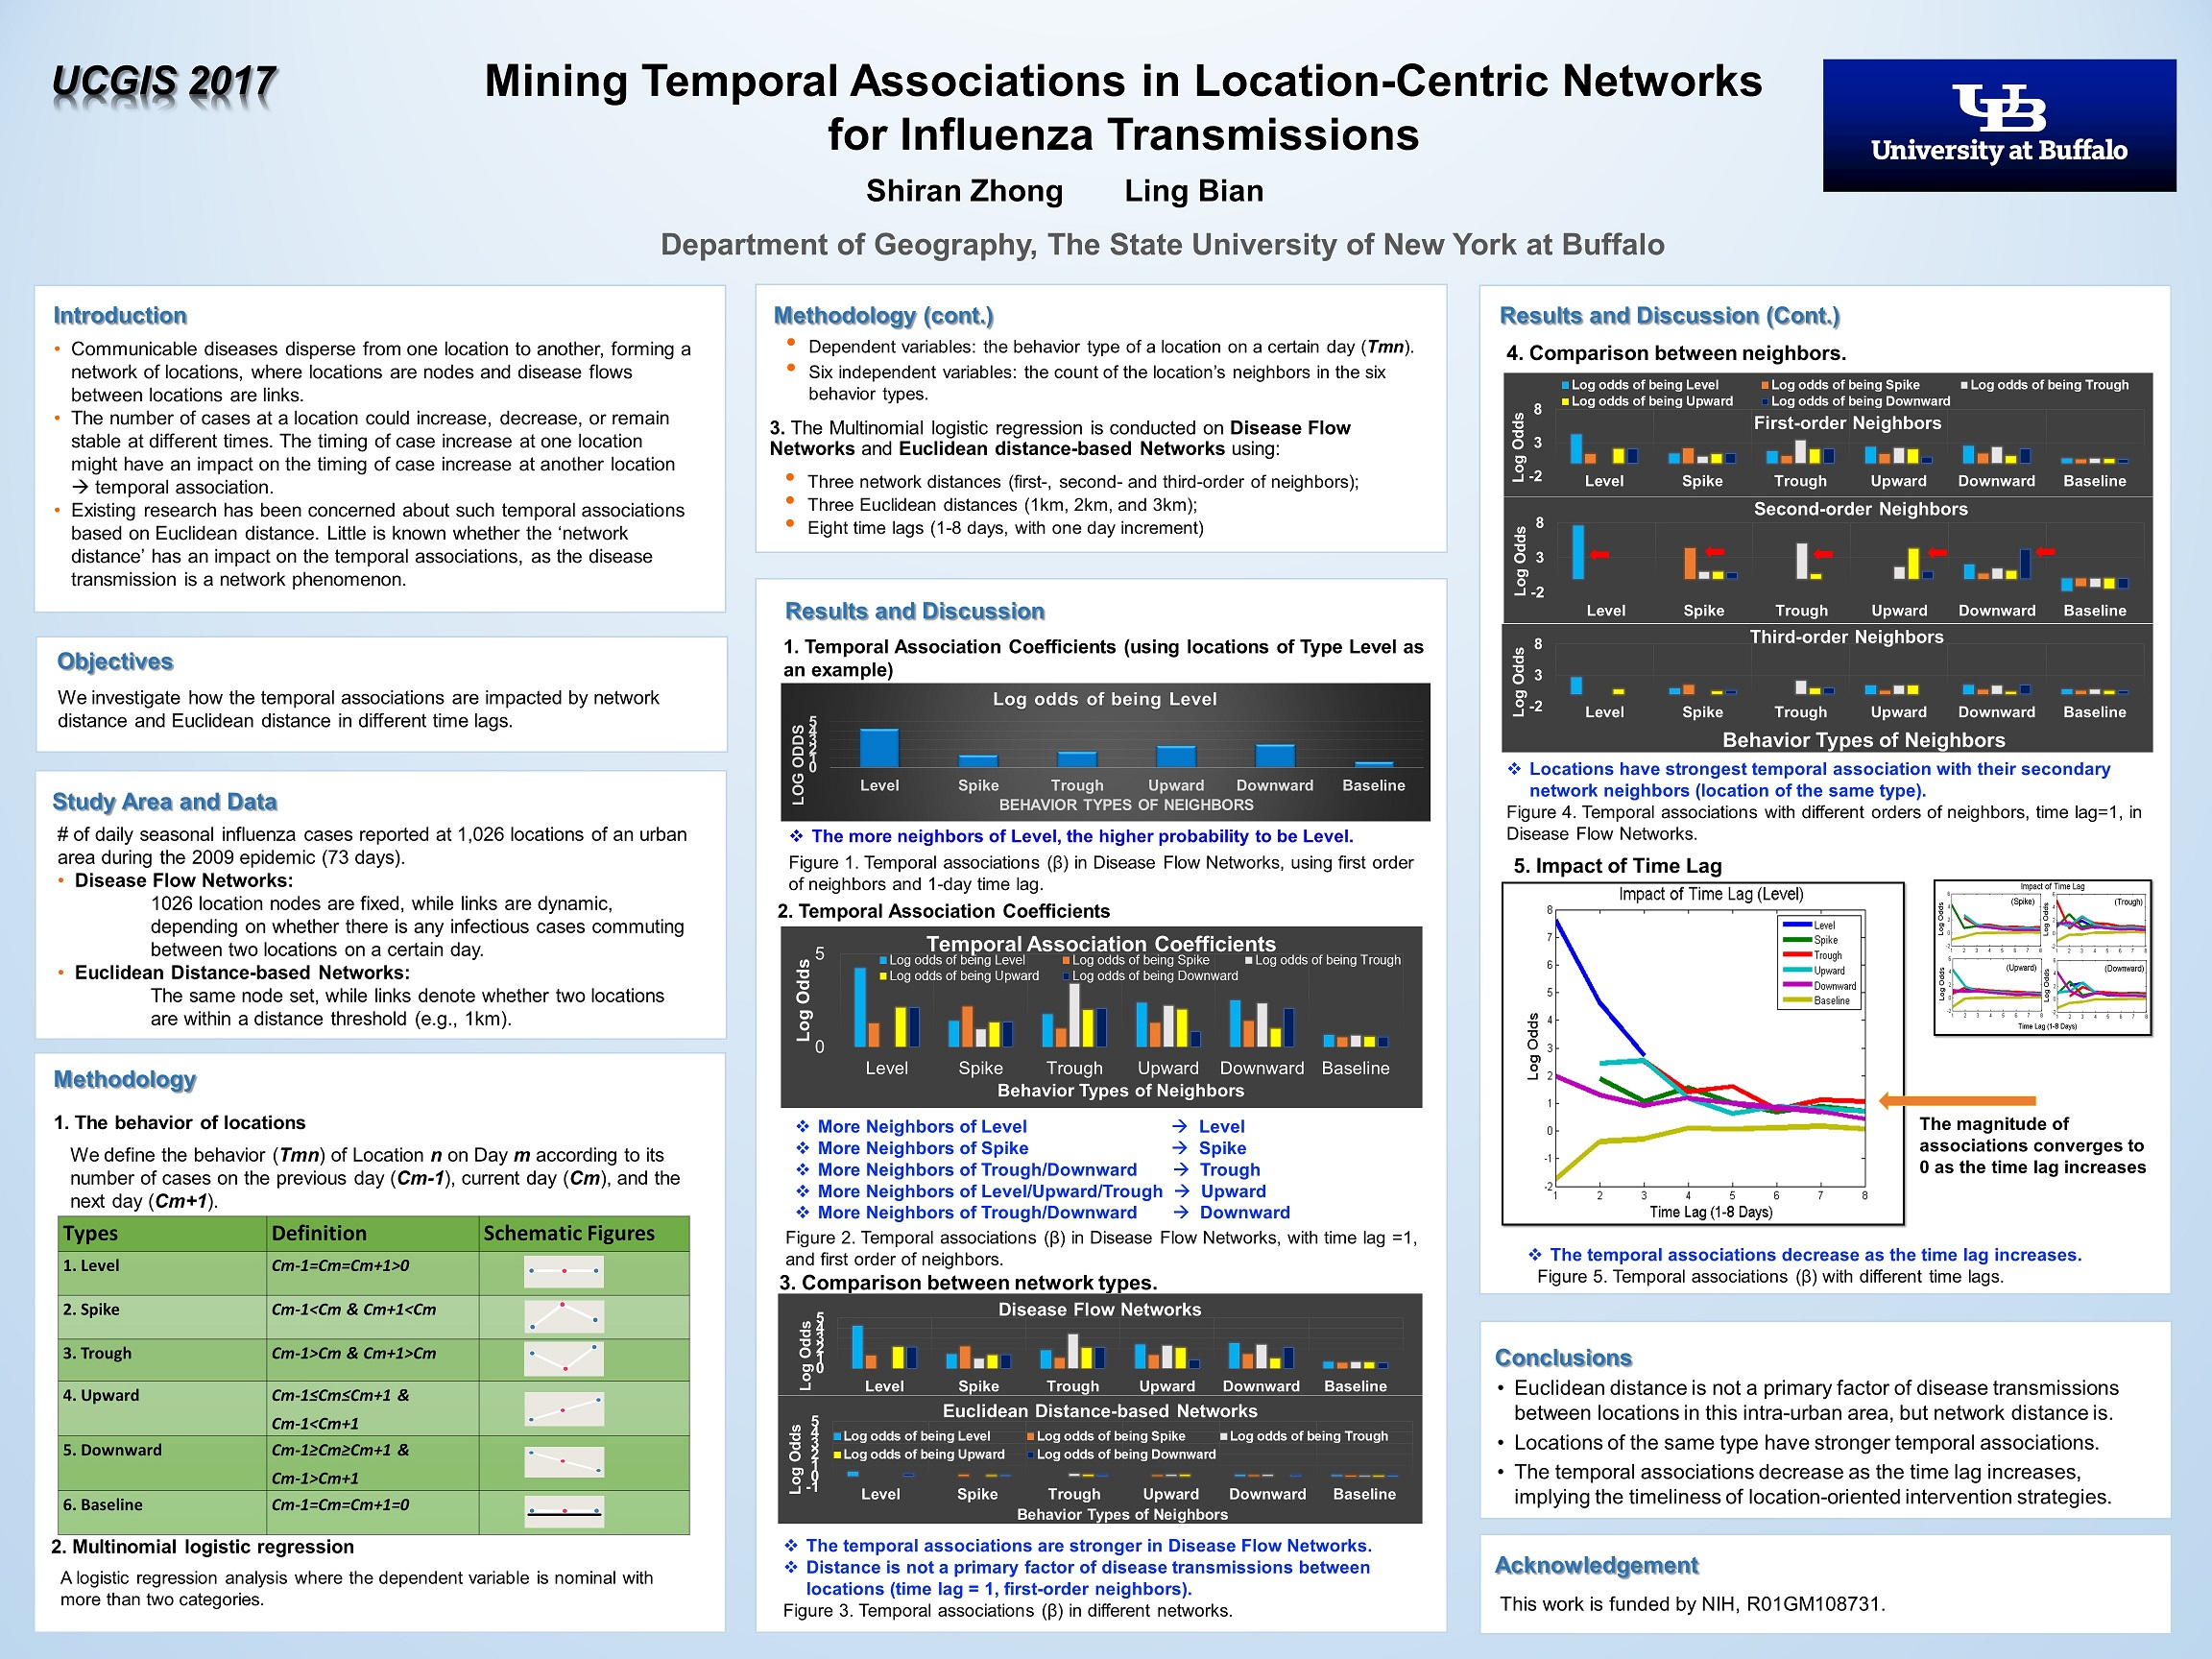 Mining Temporal Associations in Location-Centric Networks for Influenza